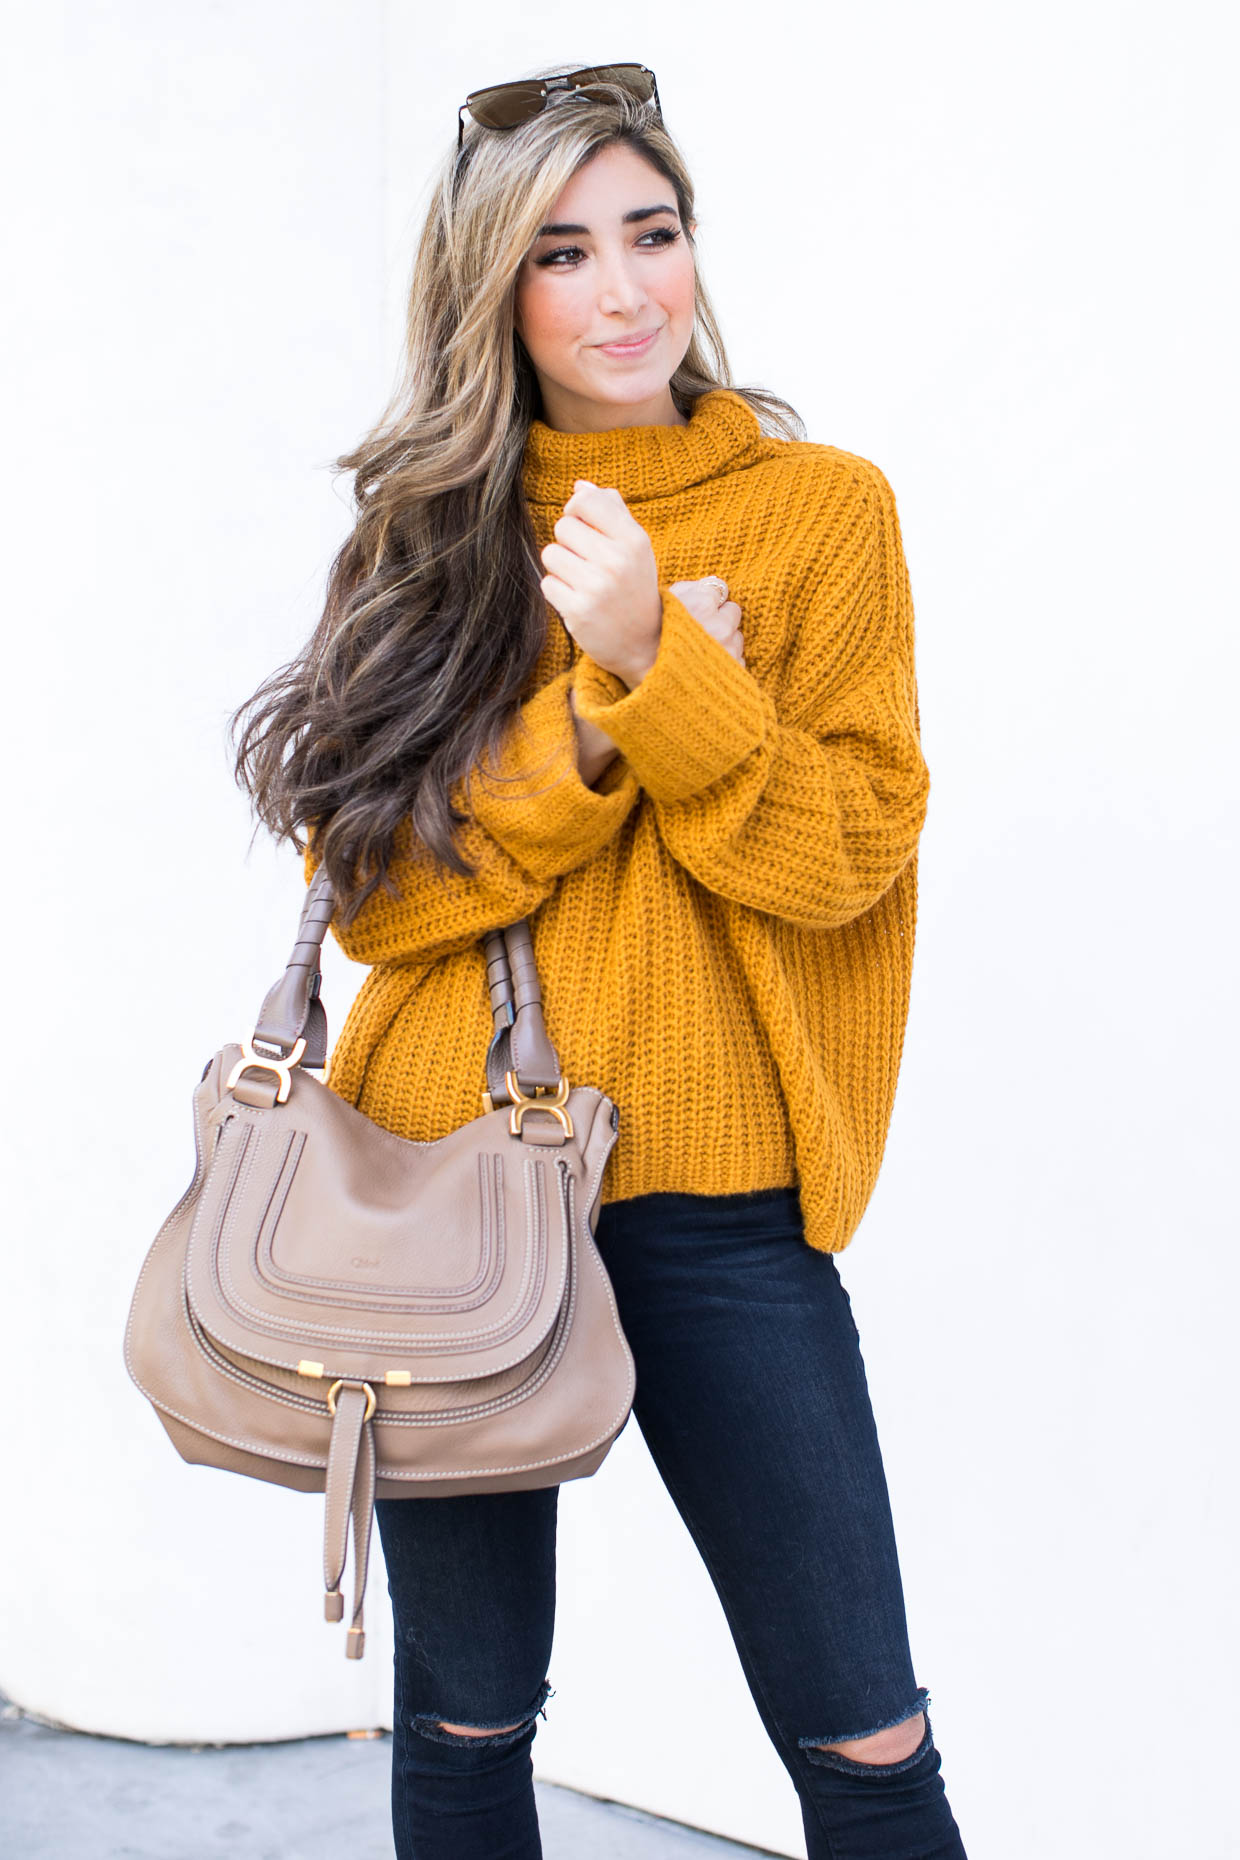 e354bf44d The Oversized Sweater - The Darling Detail